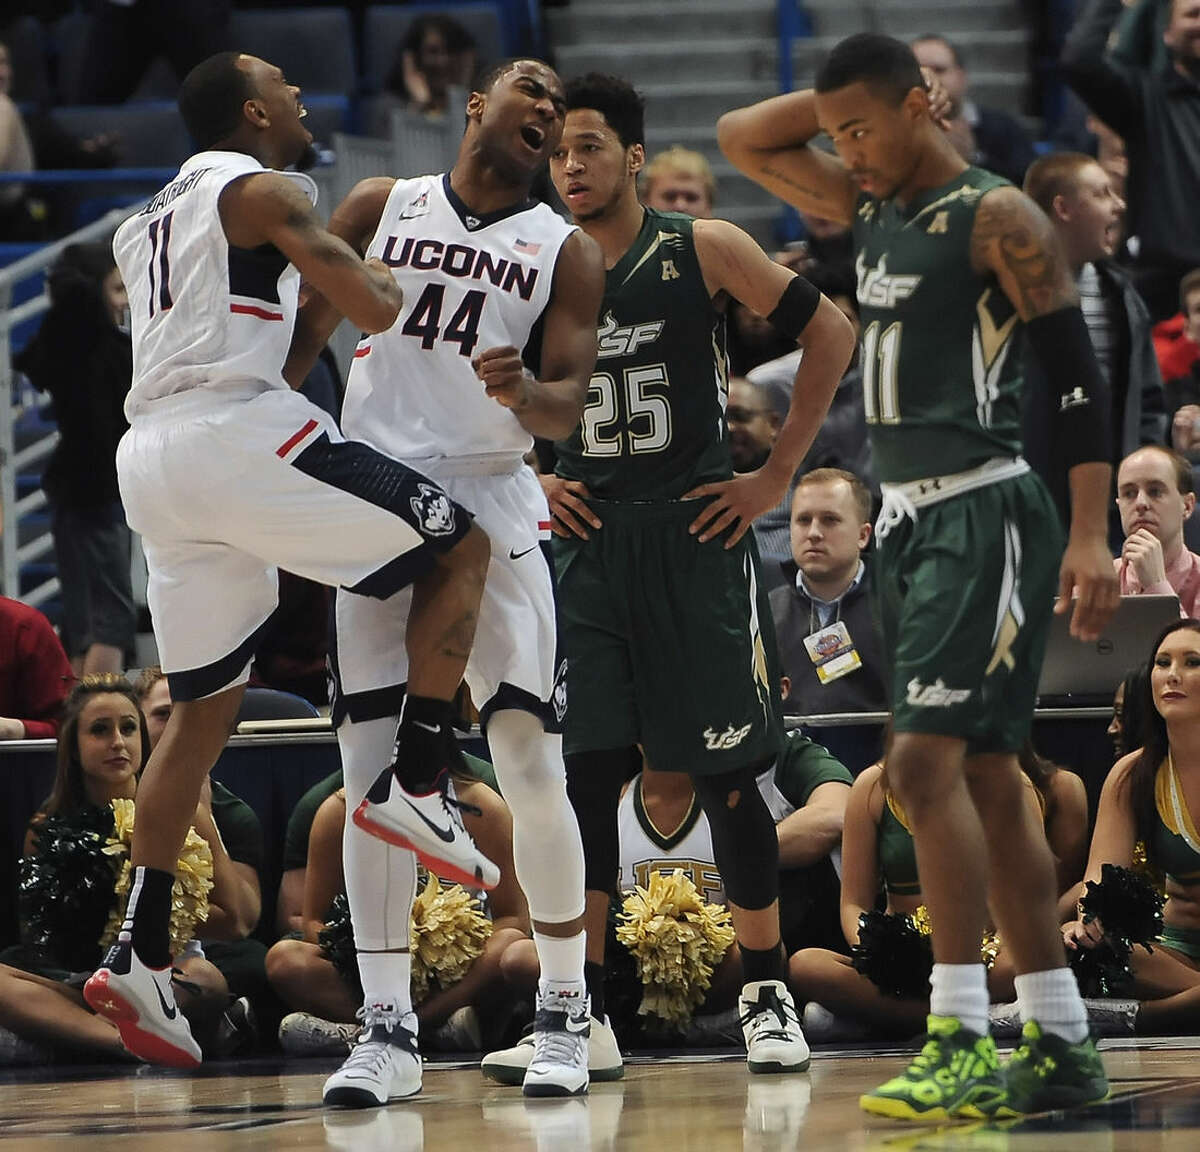 Connecticut's Ryan Boatright, left, and Rodney Purvis reacts as South Florida's Troy Holston Jr., center right, and Anthony Collins , right, look on during the first half of an NCAA college basketball game in the first round of the American Athletic Conference tournament, Thursday, March 12, 2015, in Hartford, Conn. (AP Photo/Jessica Hill)